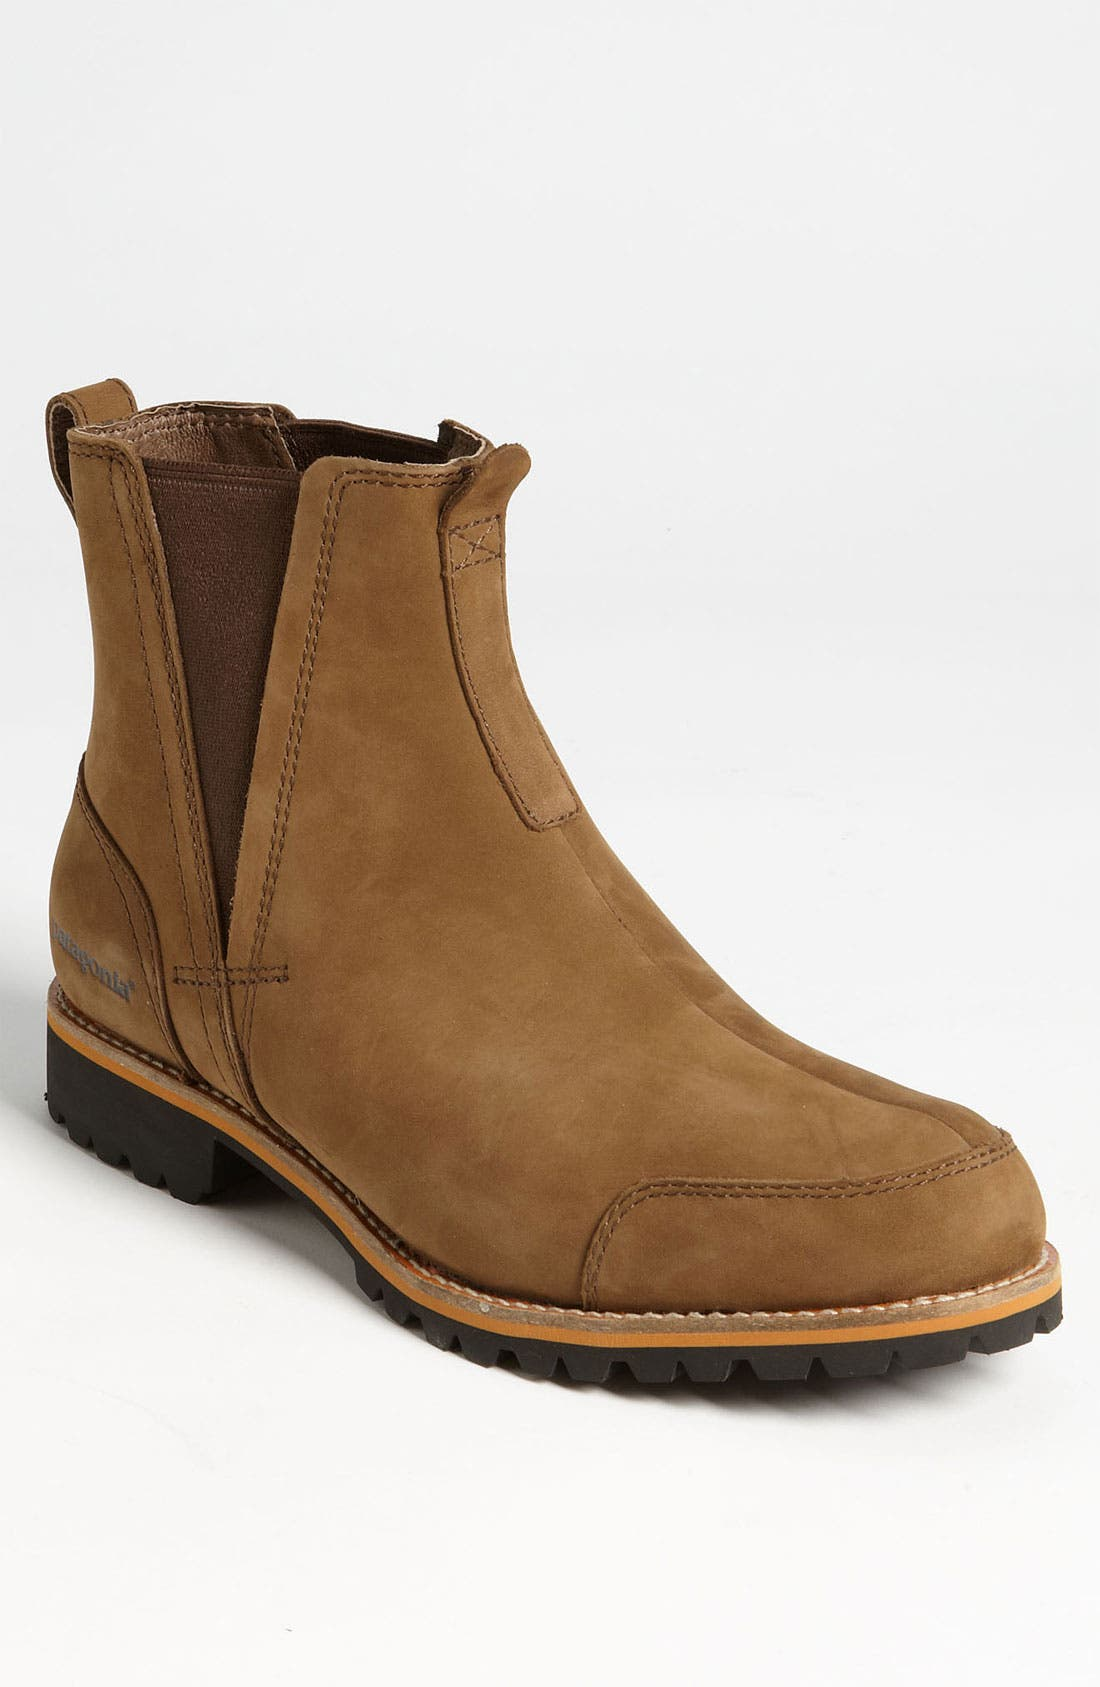 Alternate Image 1 Selected - Patagonia 'Tin Shed' Chelsea Boot